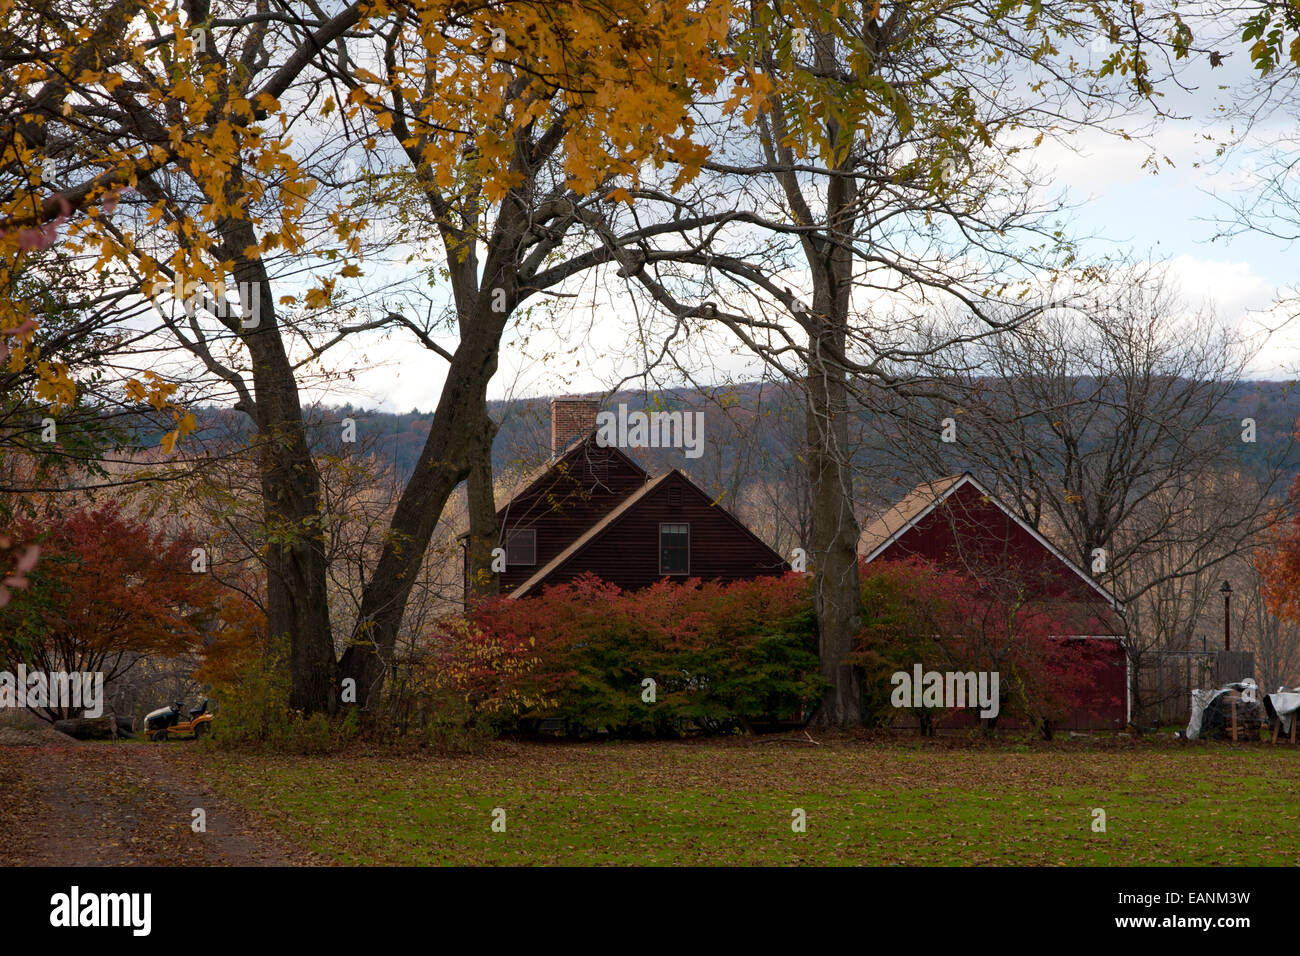 Deerfield, Massachusetts, Historic Deerfield, Old Deerfield, farm, countryside, autumn, foliage season, - Stock Image